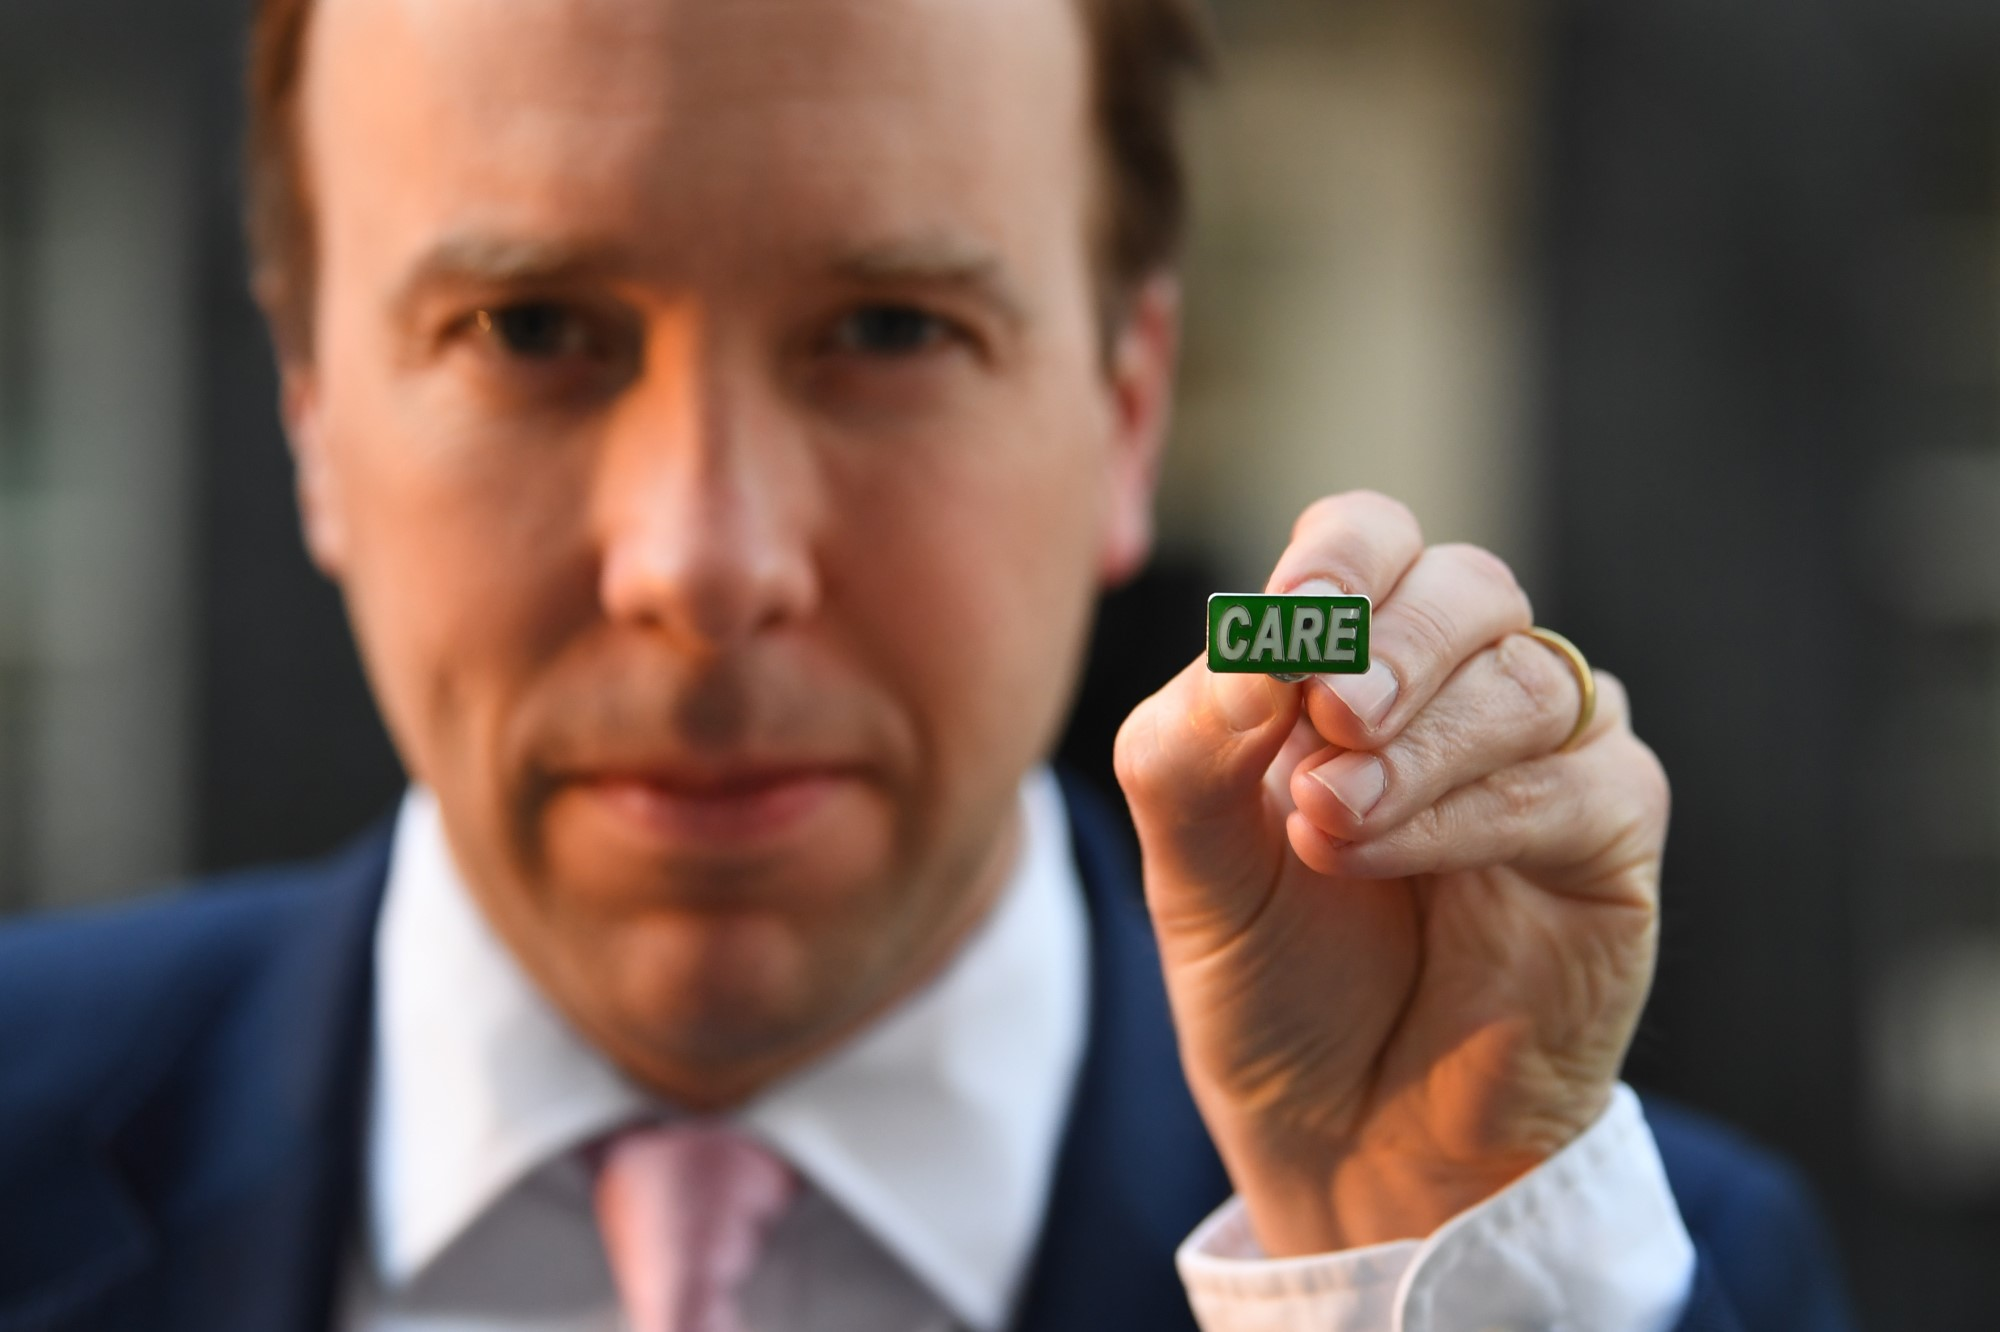 """Matt Hancock showing the new 'Care' badge, described as a """"badge of honour"""""""